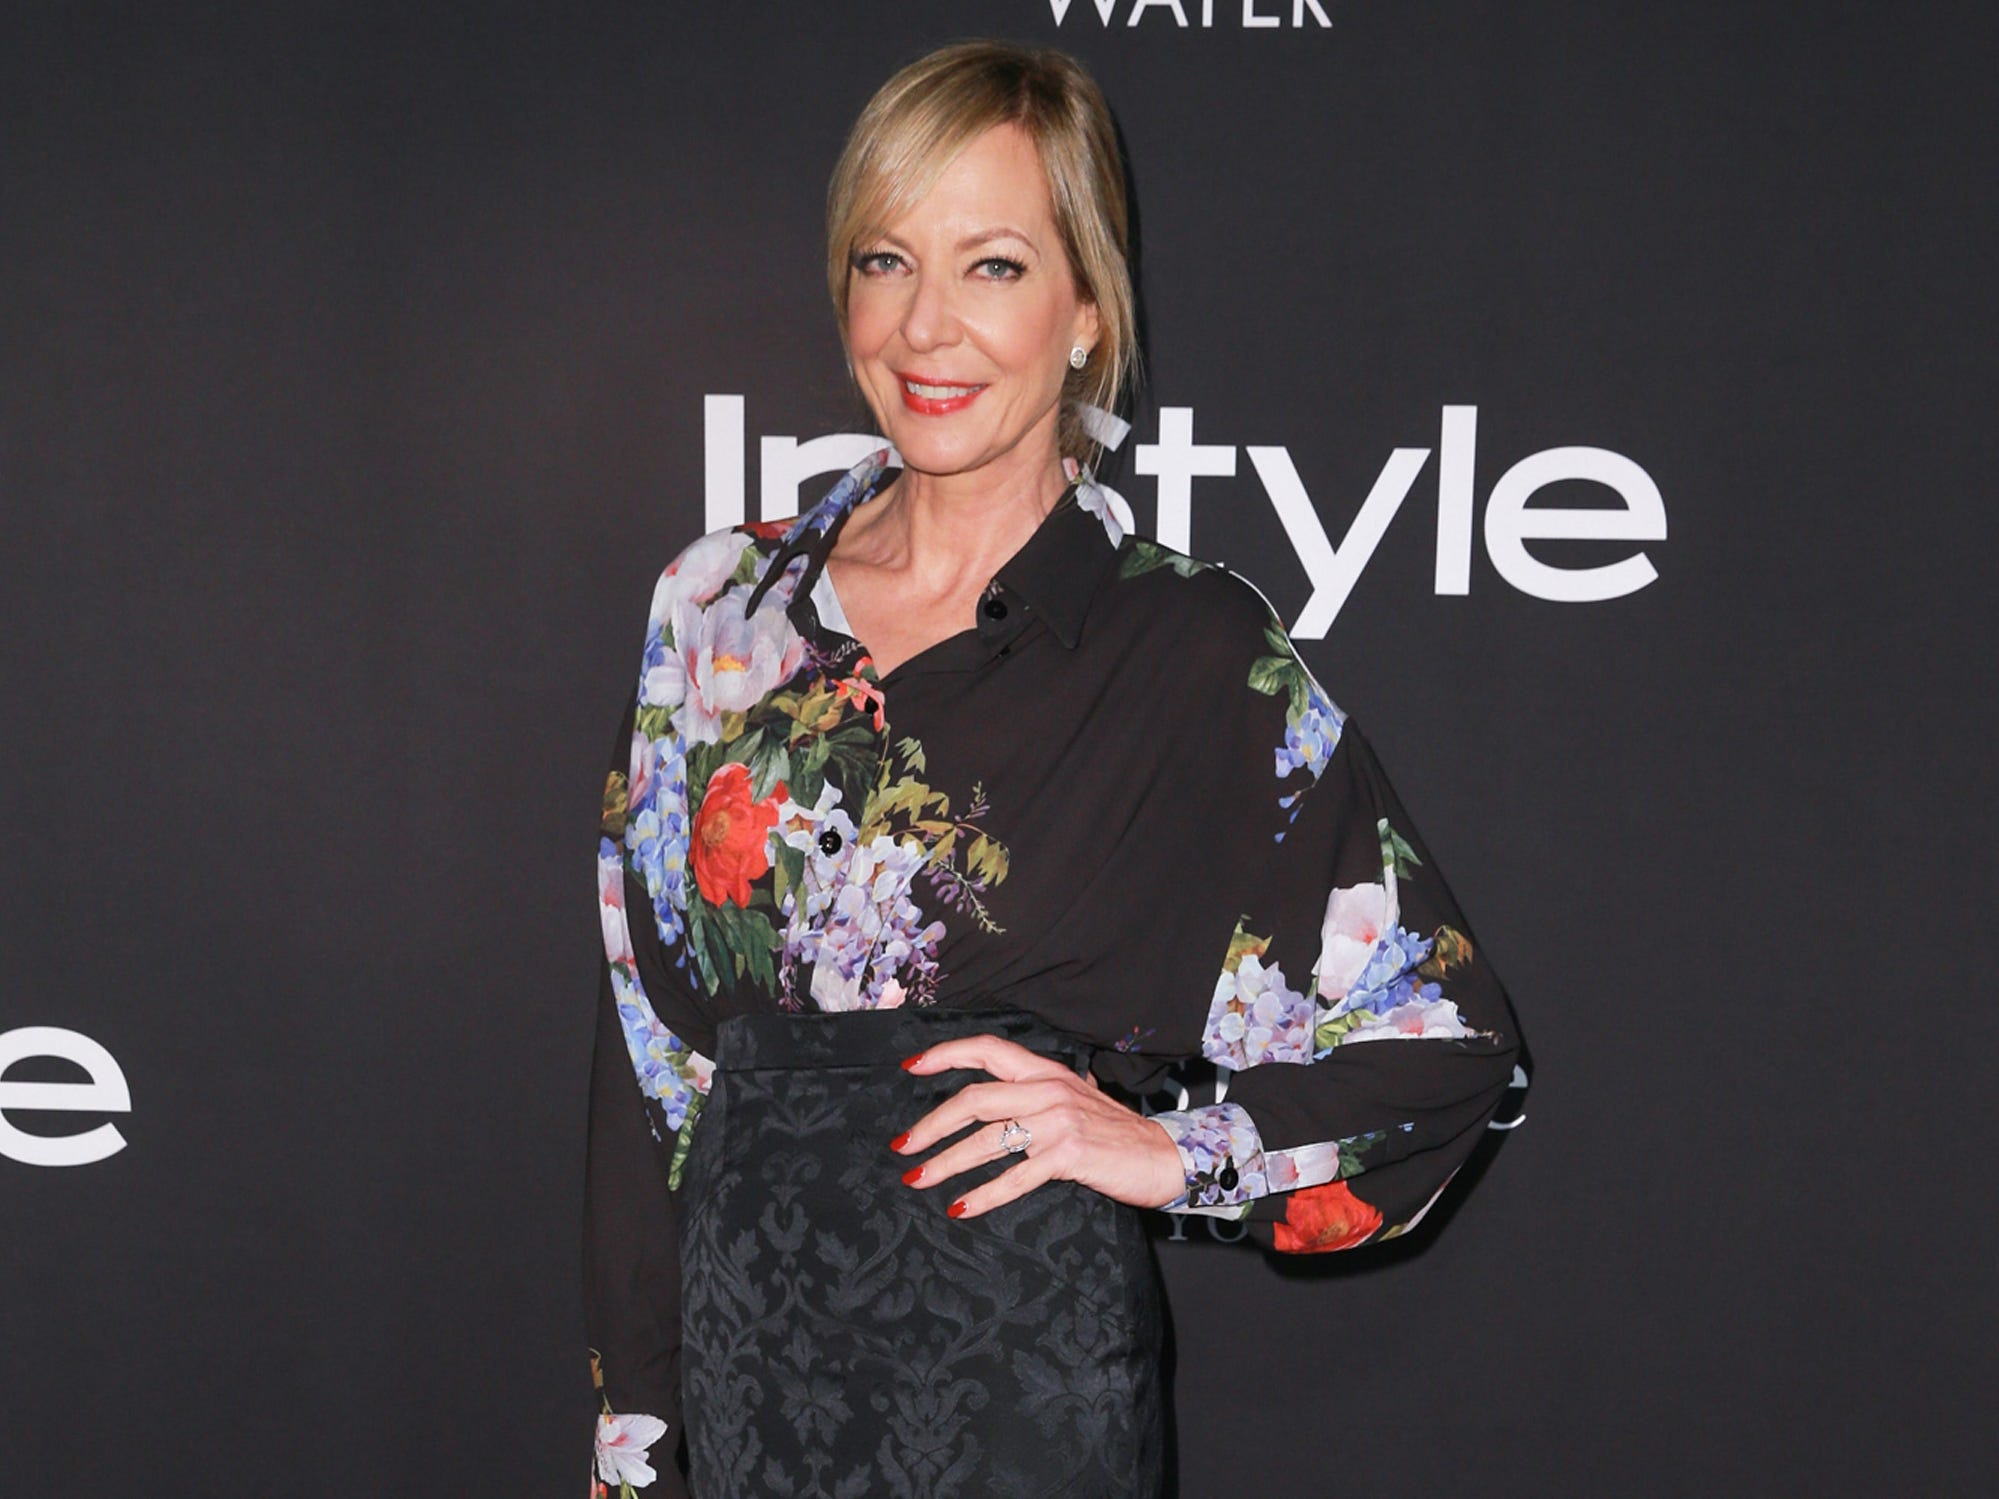 LOS ANGELES, CA - OCTOBER 22:  Allison Janney attends the 2018 InStyle Awards at The Getty Center on October 22, 2018 in Los Angeles, California.  (Photo by Rich Fury/Getty Images) ORG XMIT: 775236597 ORIG FILE ID: 1052793272